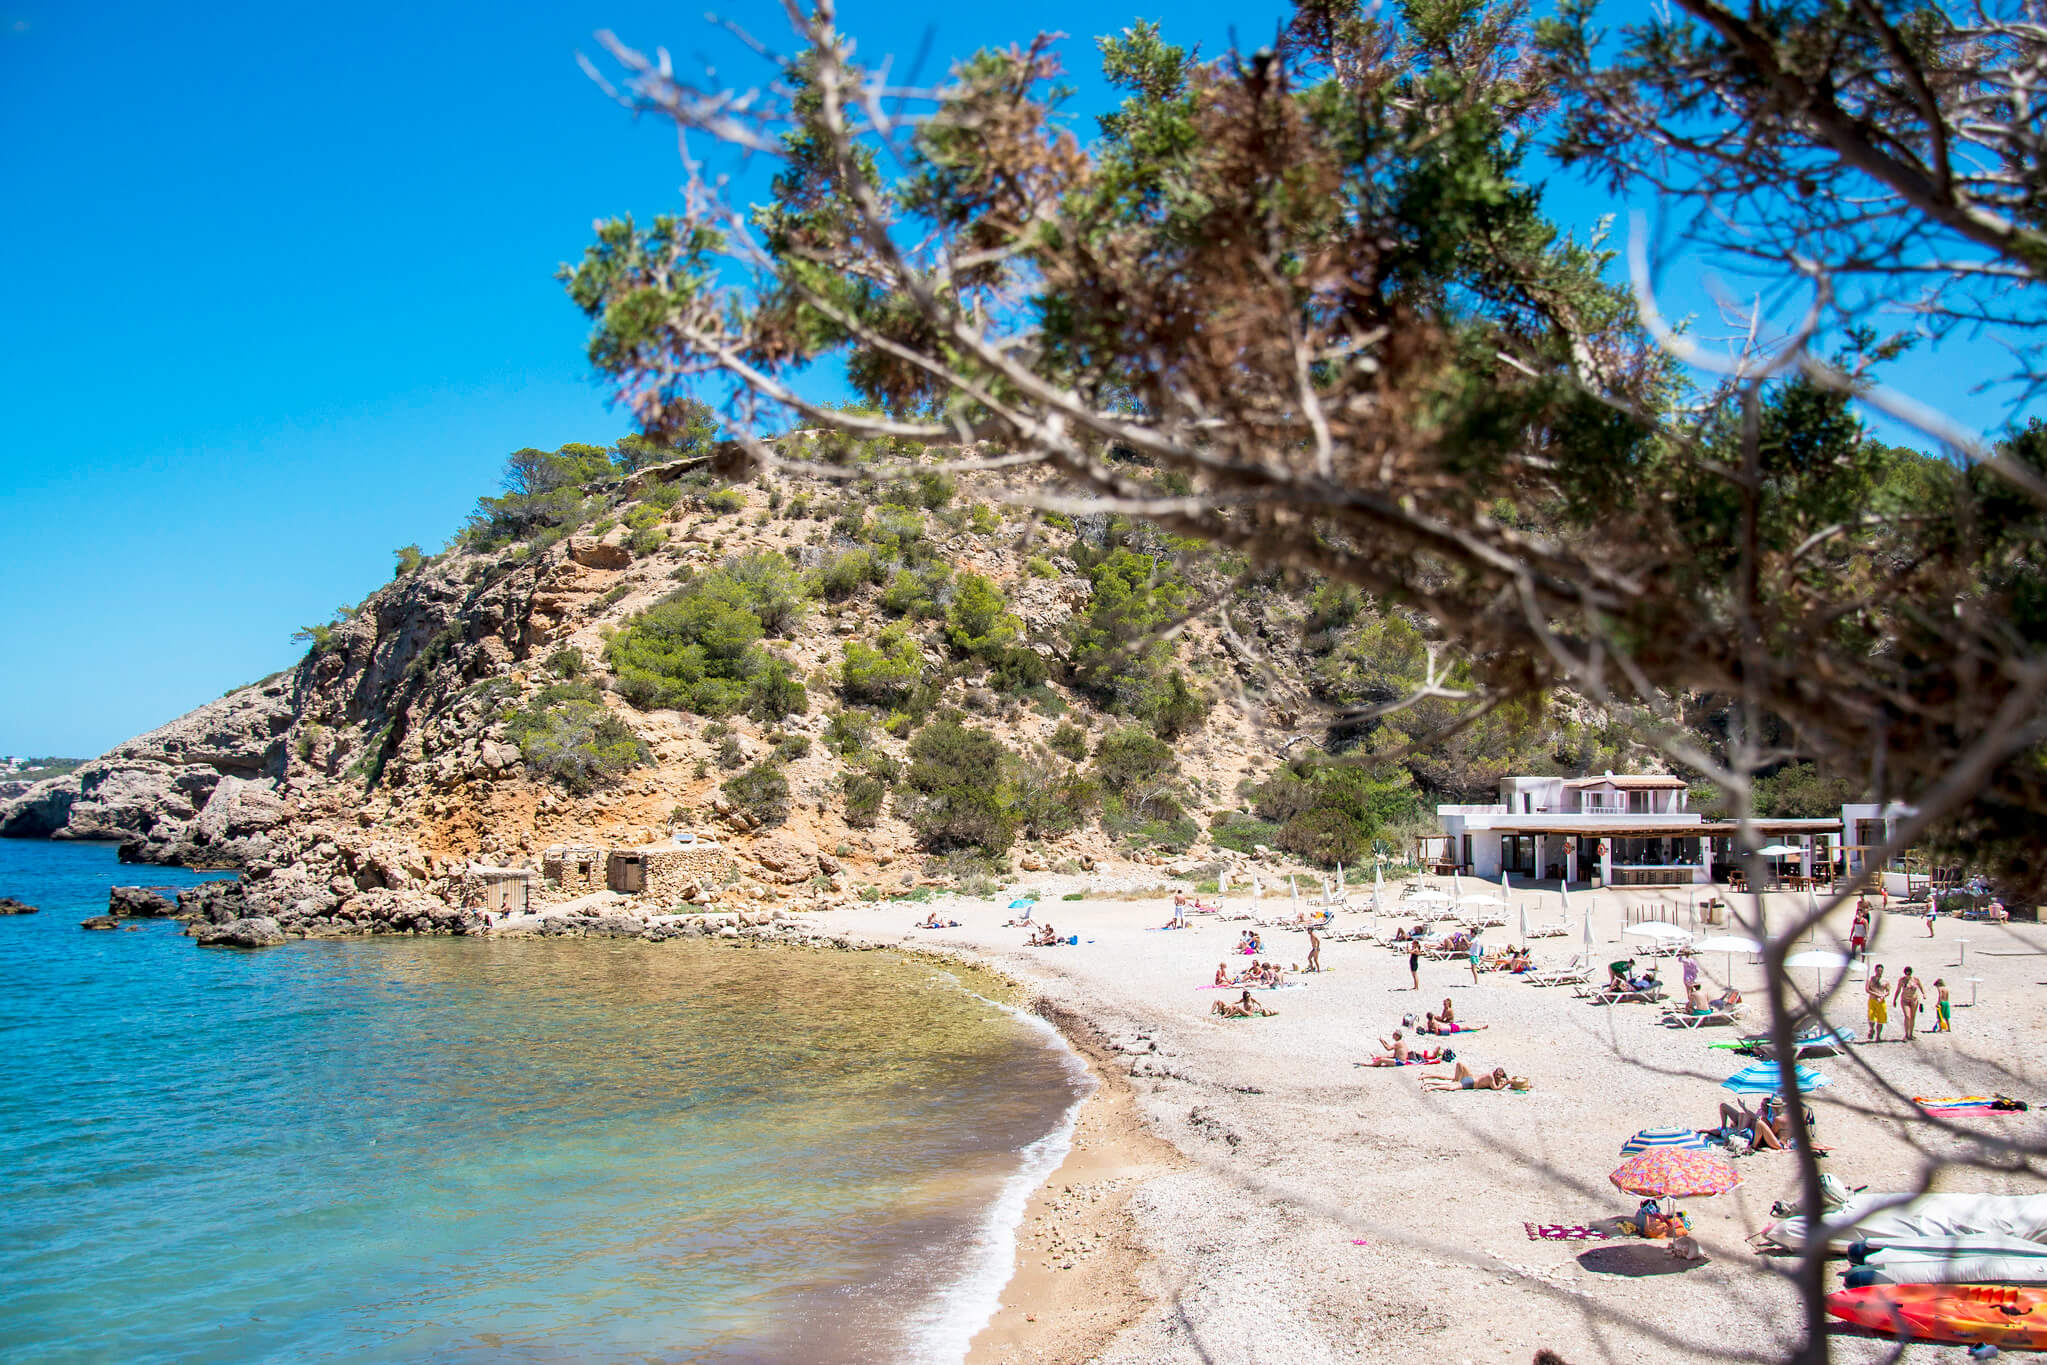 https://www.white-ibiza.com/wp-content/uploads/2020/03/ibiza-beaches-cala-moli-03.jpg